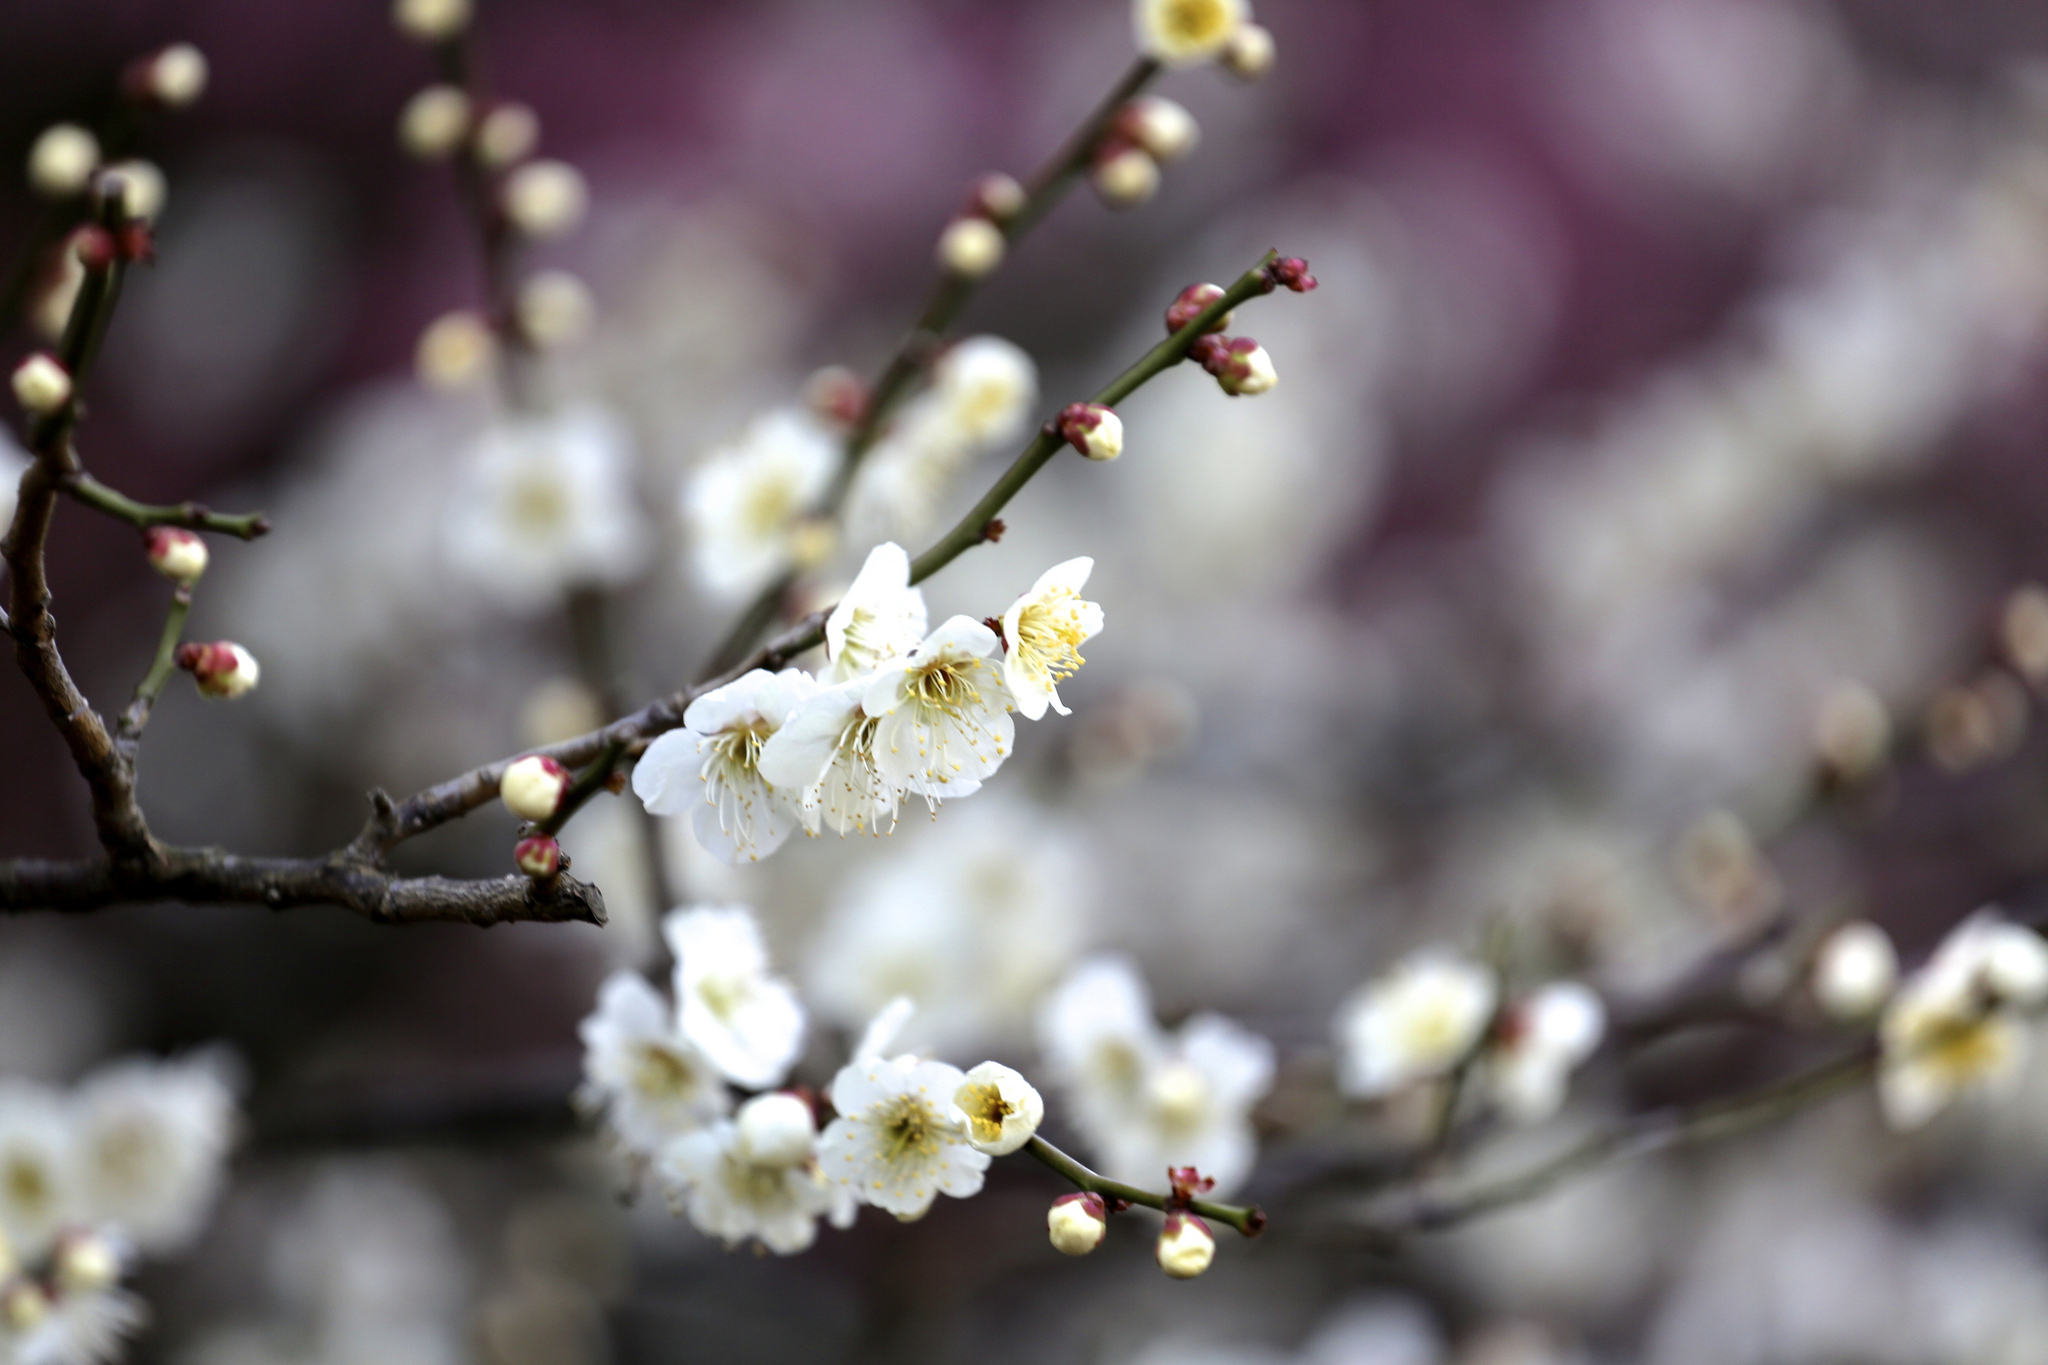 Spring Blossom Tree Branches Flowers Fruit Wallpaper